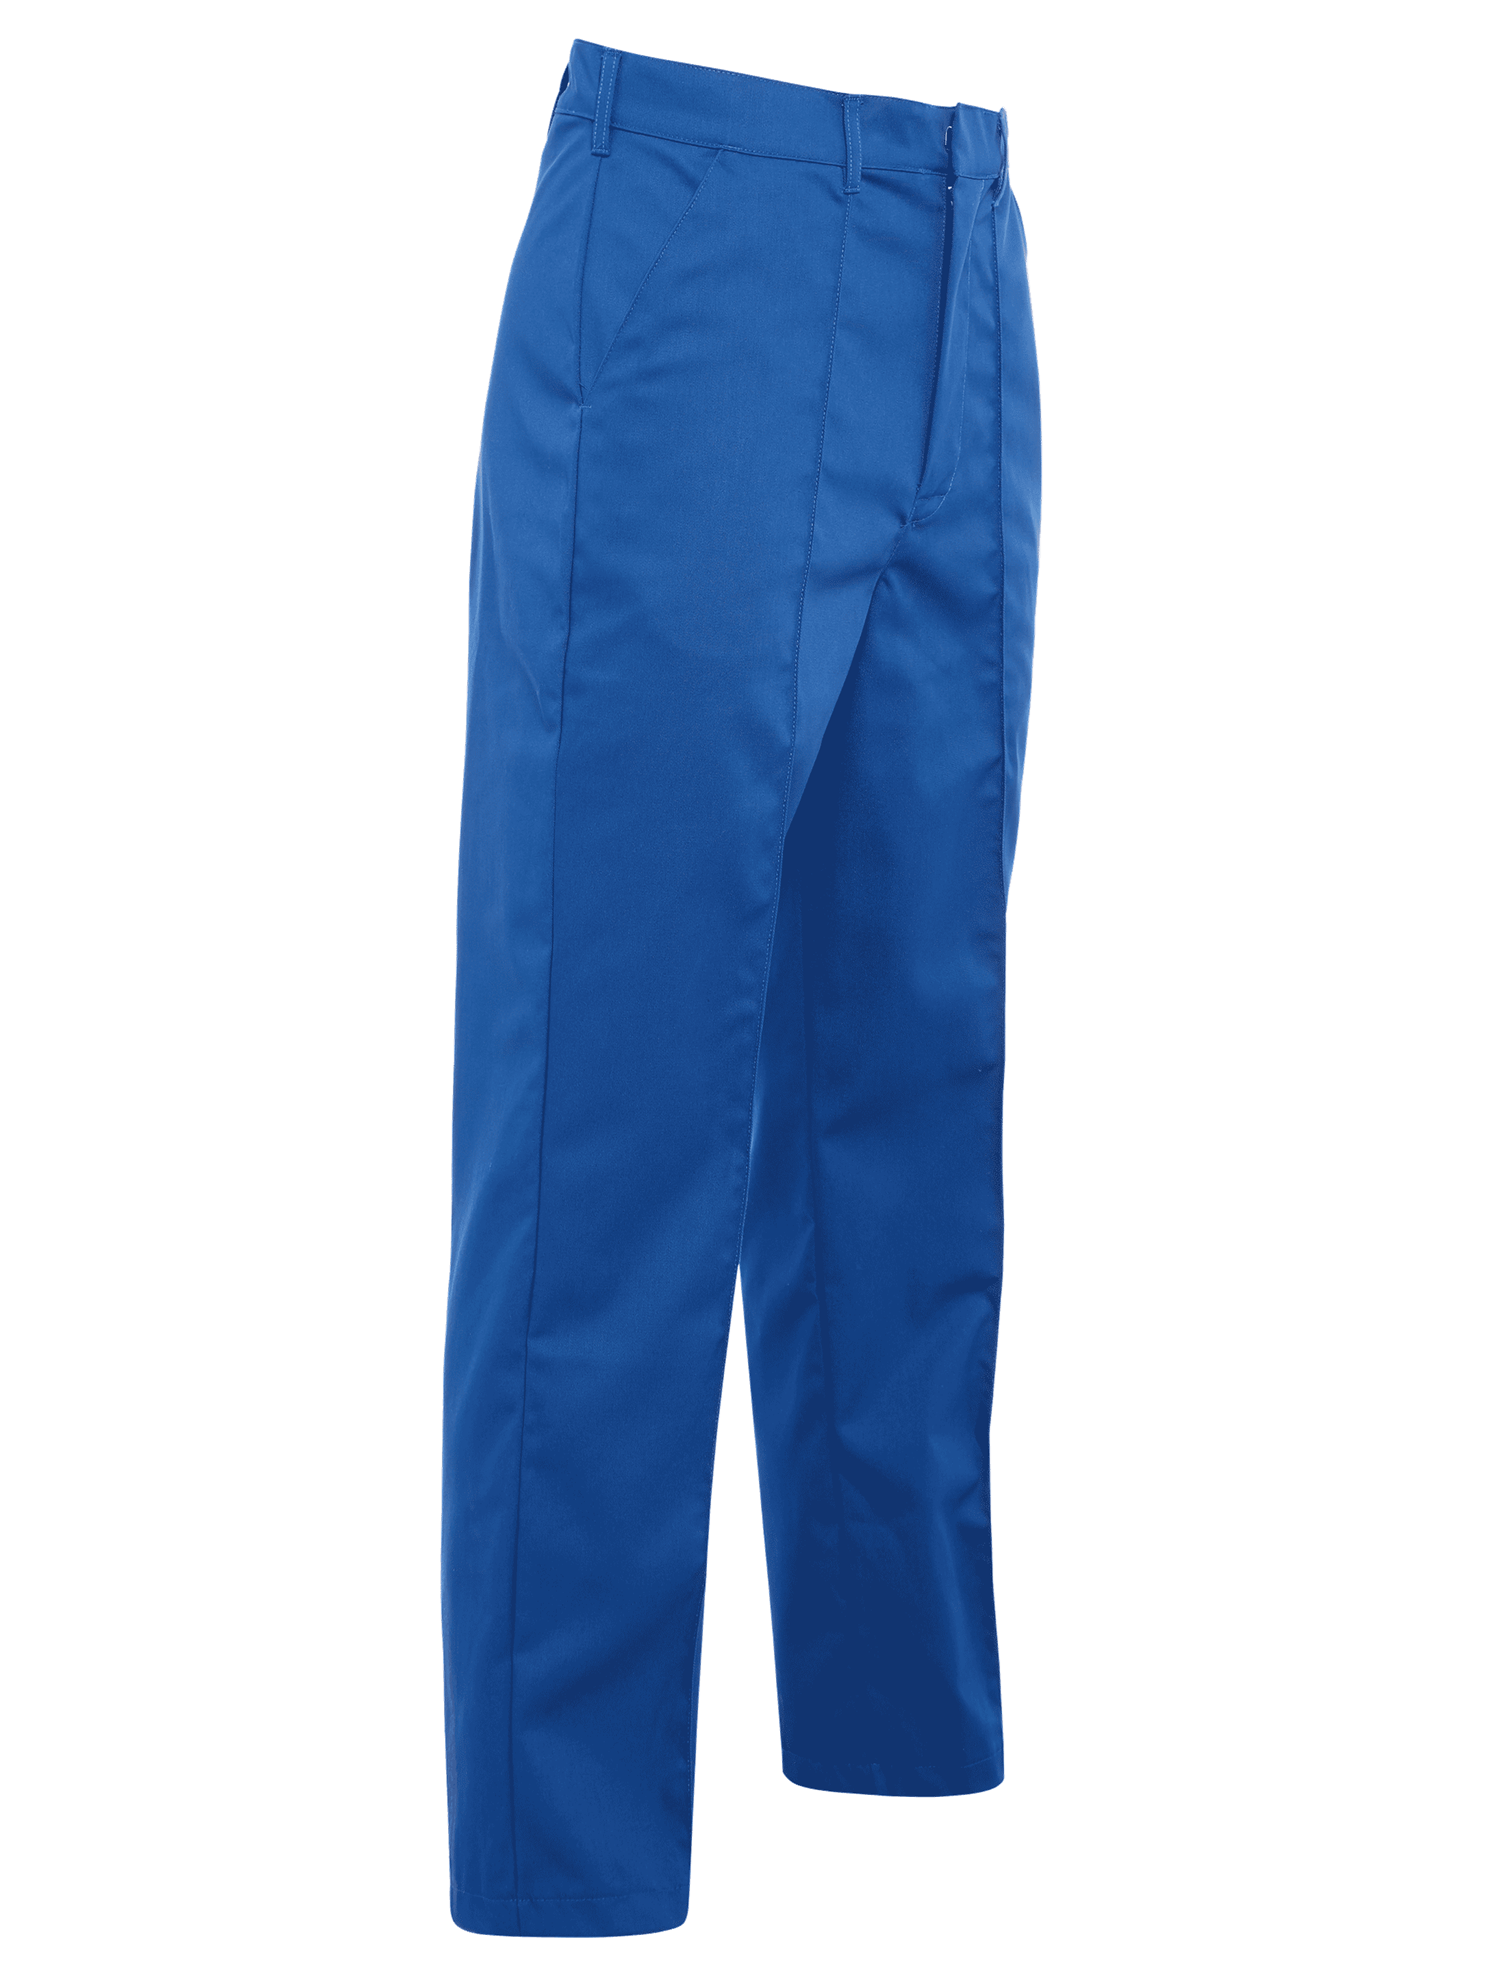 Picture of Trouser with Sewn-In Front Crease (245gsm) (Royal Blue)